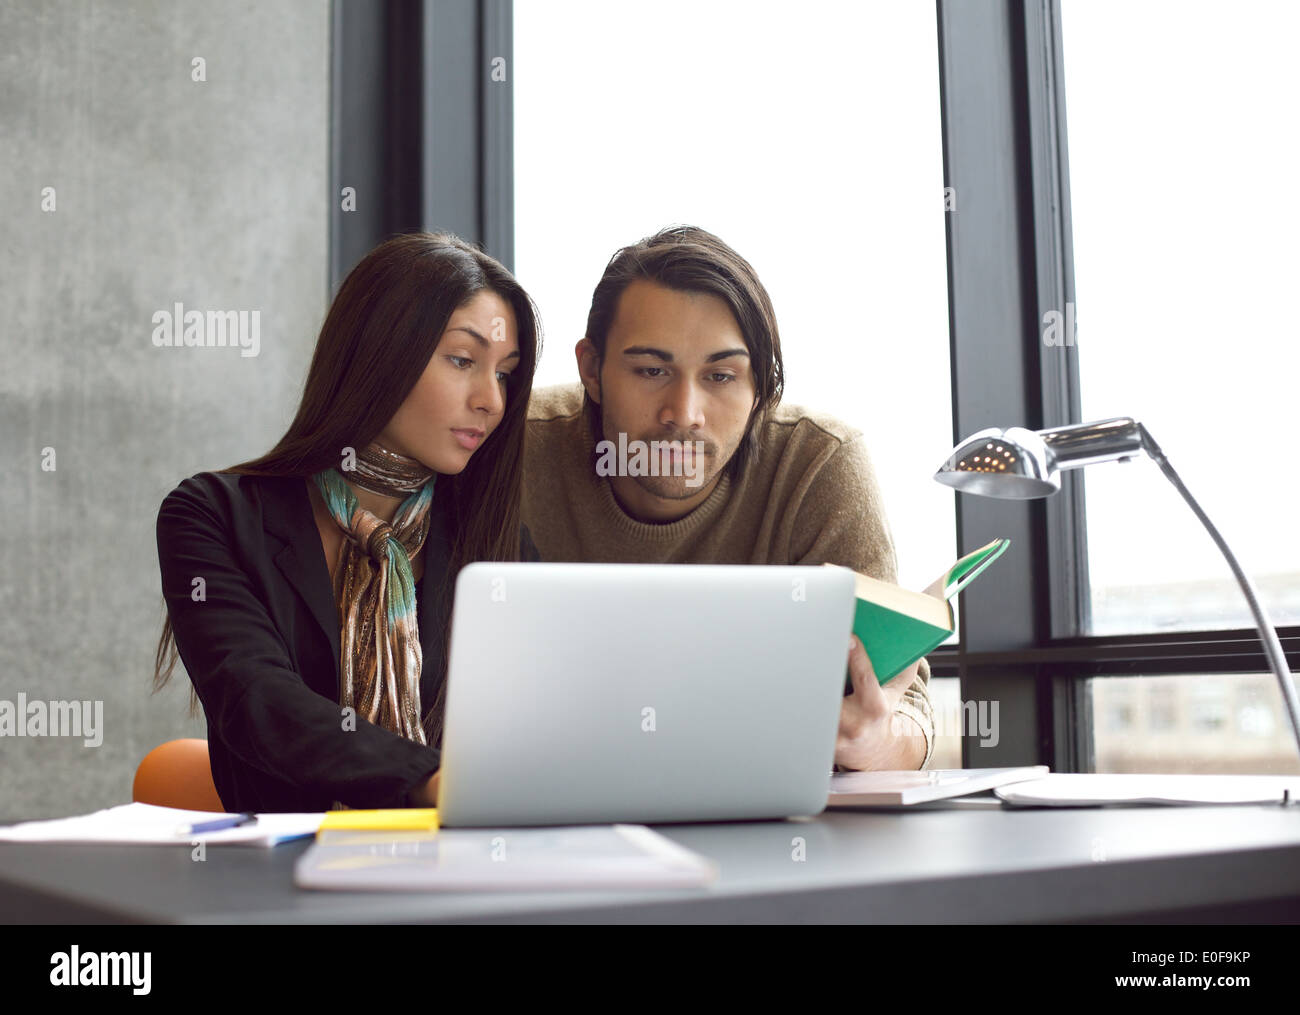 Young university students searching information in books and laptop for their studies. Sitting at the table studying together. - Stock Image